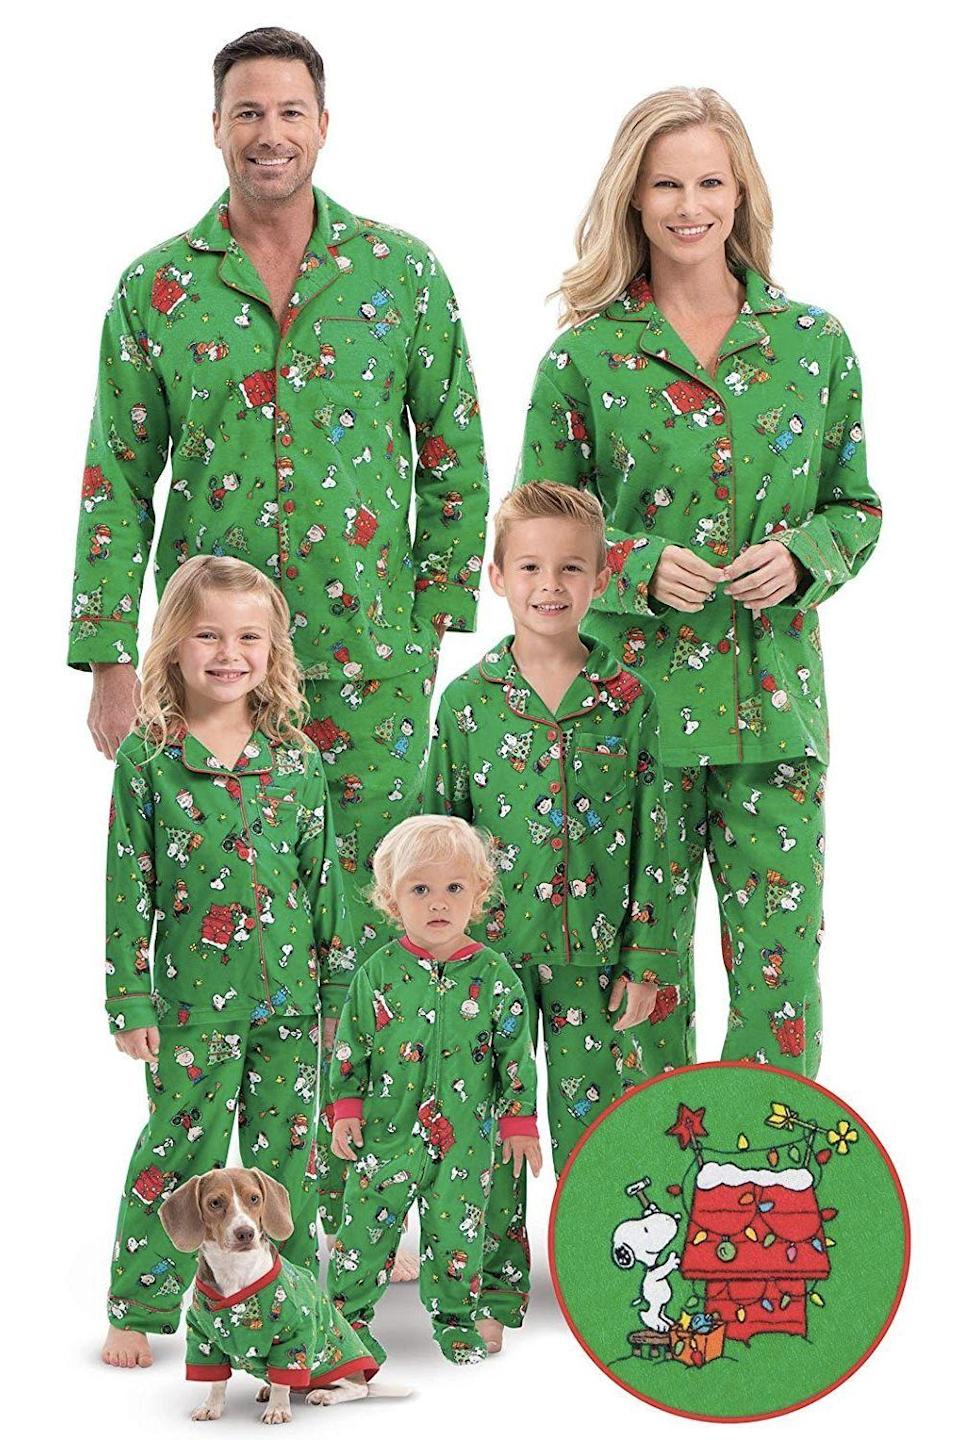 """<p><strong>PajamaGram</strong></p><p>Starting from $18</p><p><a href=""""http://www.amazon.com/dp/B00SCBTV3G/?tag=syn-yahoo-20&ascsubtag=%5Bartid%7C10055.g.4946%5Bsrc%7Cyahoo-us"""" rel=""""nofollow noopener"""" target=""""_blank"""" data-ylk=""""slk:Shop Now"""" class=""""link rapid-noclick-resp"""">Shop Now</a></p><p>Include members of the family of every size — and species — with these pajamas decked out with scenes from <em><a href=""""https://www.amazon.com/Charlie-Brown-Christmas-Ann-Altieri/dp/B001K2JE9K/?tag=syn-yahoo-20&ascsubtag=%5Bartid%7C10055.g.4946%5Bsrc%7Cyahoo-us"""" rel=""""nofollow noopener"""" target=""""_blank"""" data-ylk=""""slk:A Charlie Brown Christmas"""" class=""""link rapid-noclick-resp"""">A Charlie Brown Christmas</a></em>. Your infant and pooch may not appreciate the theme as much, but everyone who sees them will.</p>"""